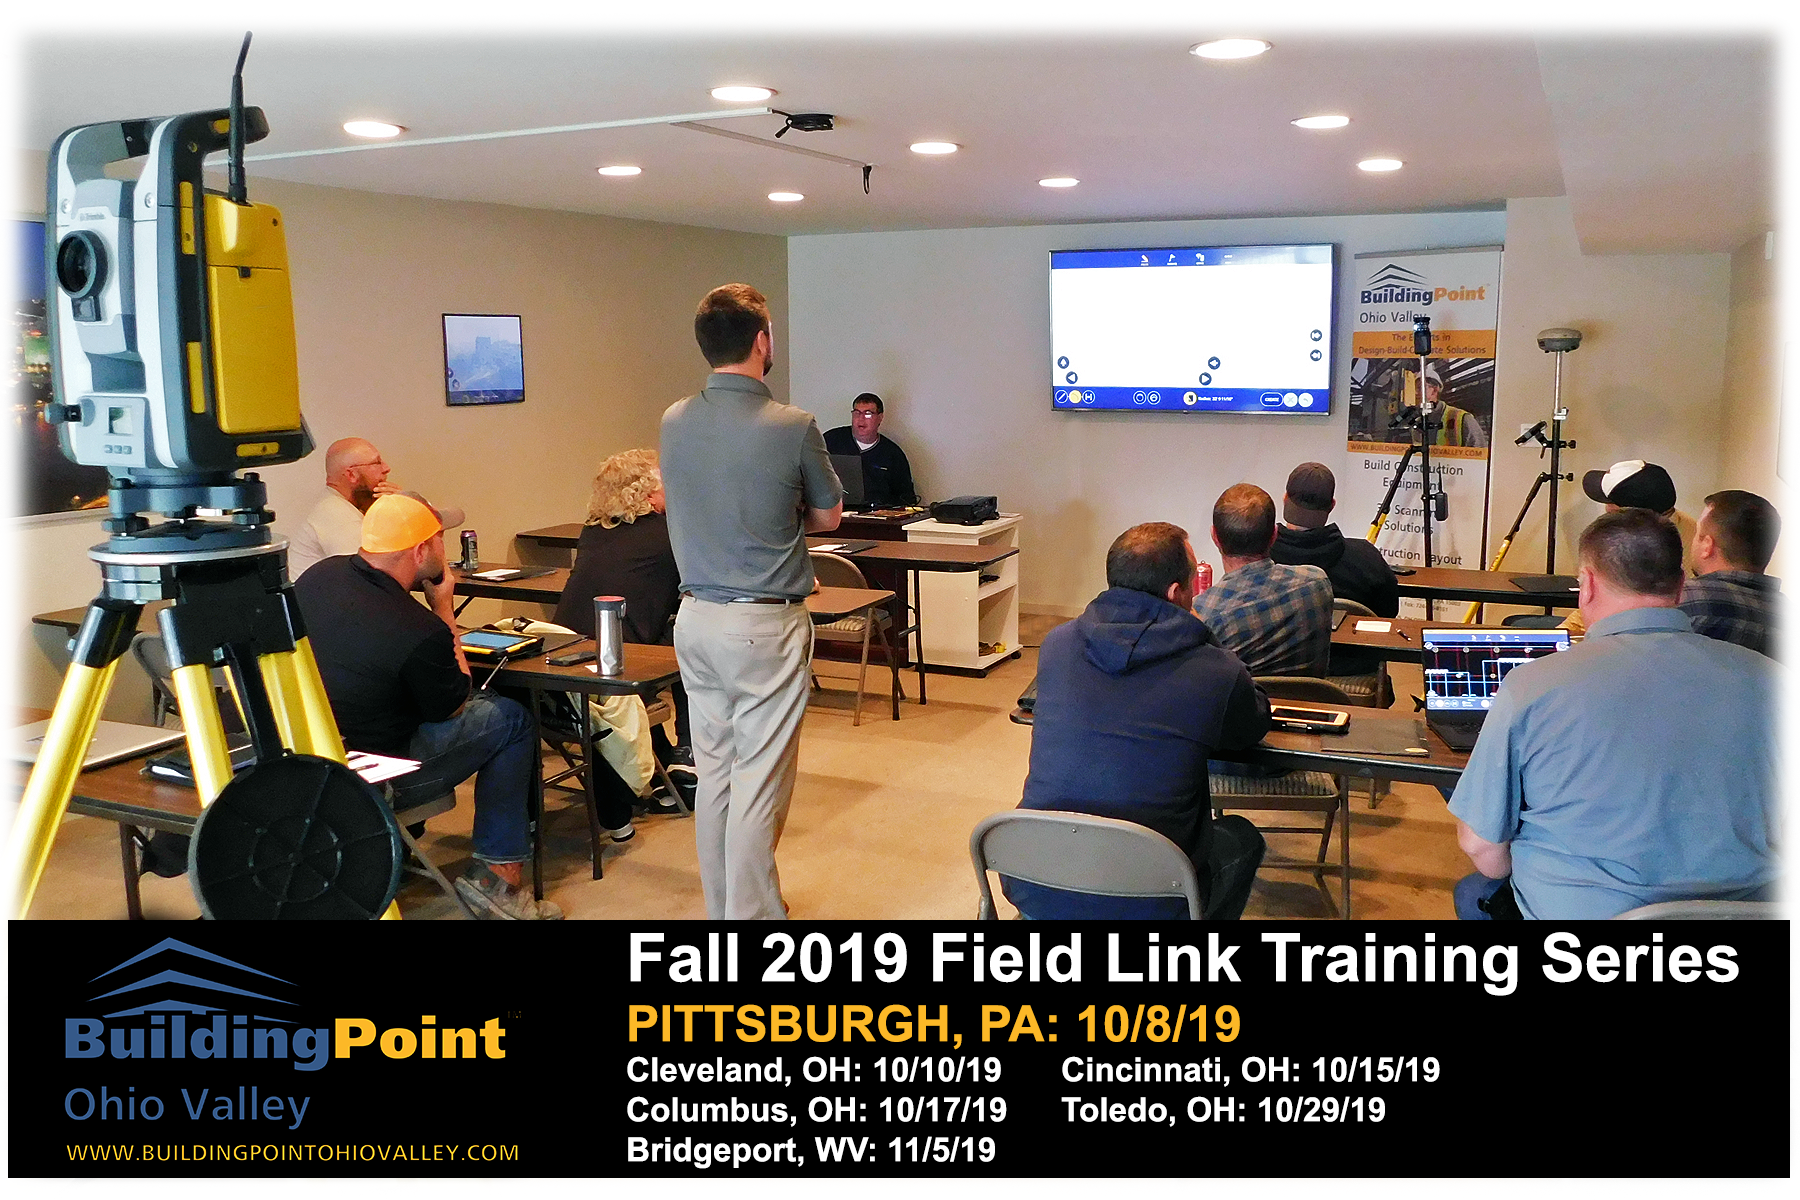 Field Link Training 2019 - Pittsburgh